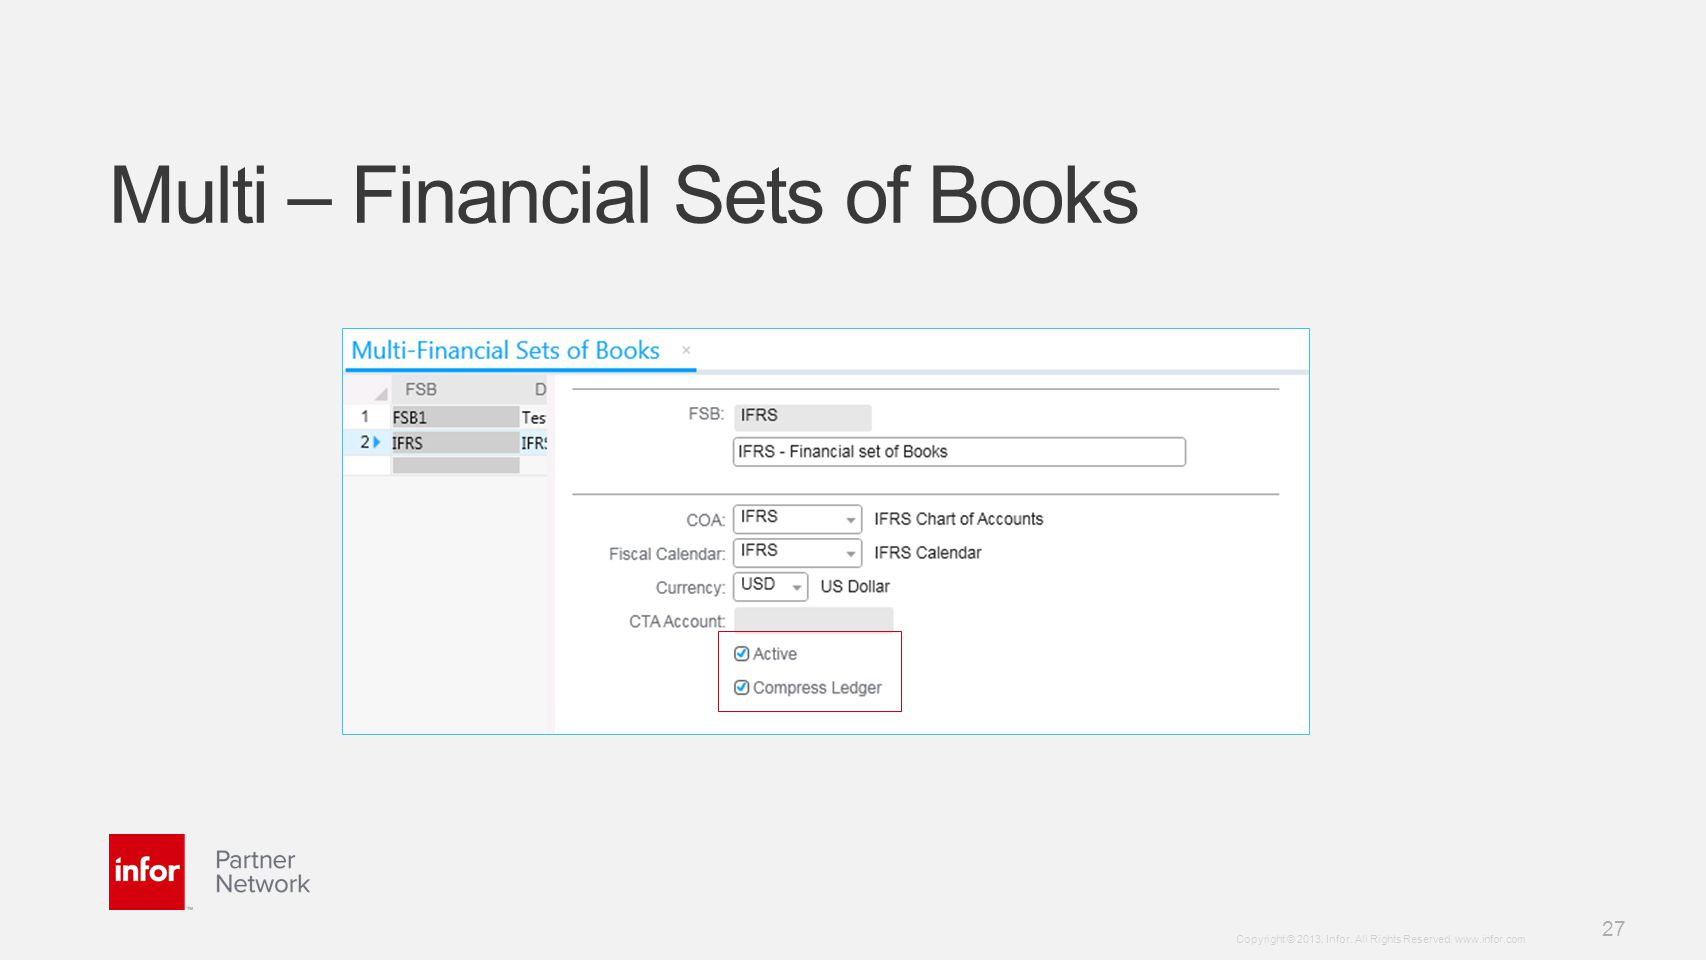 Multi – Financial Sets of Books